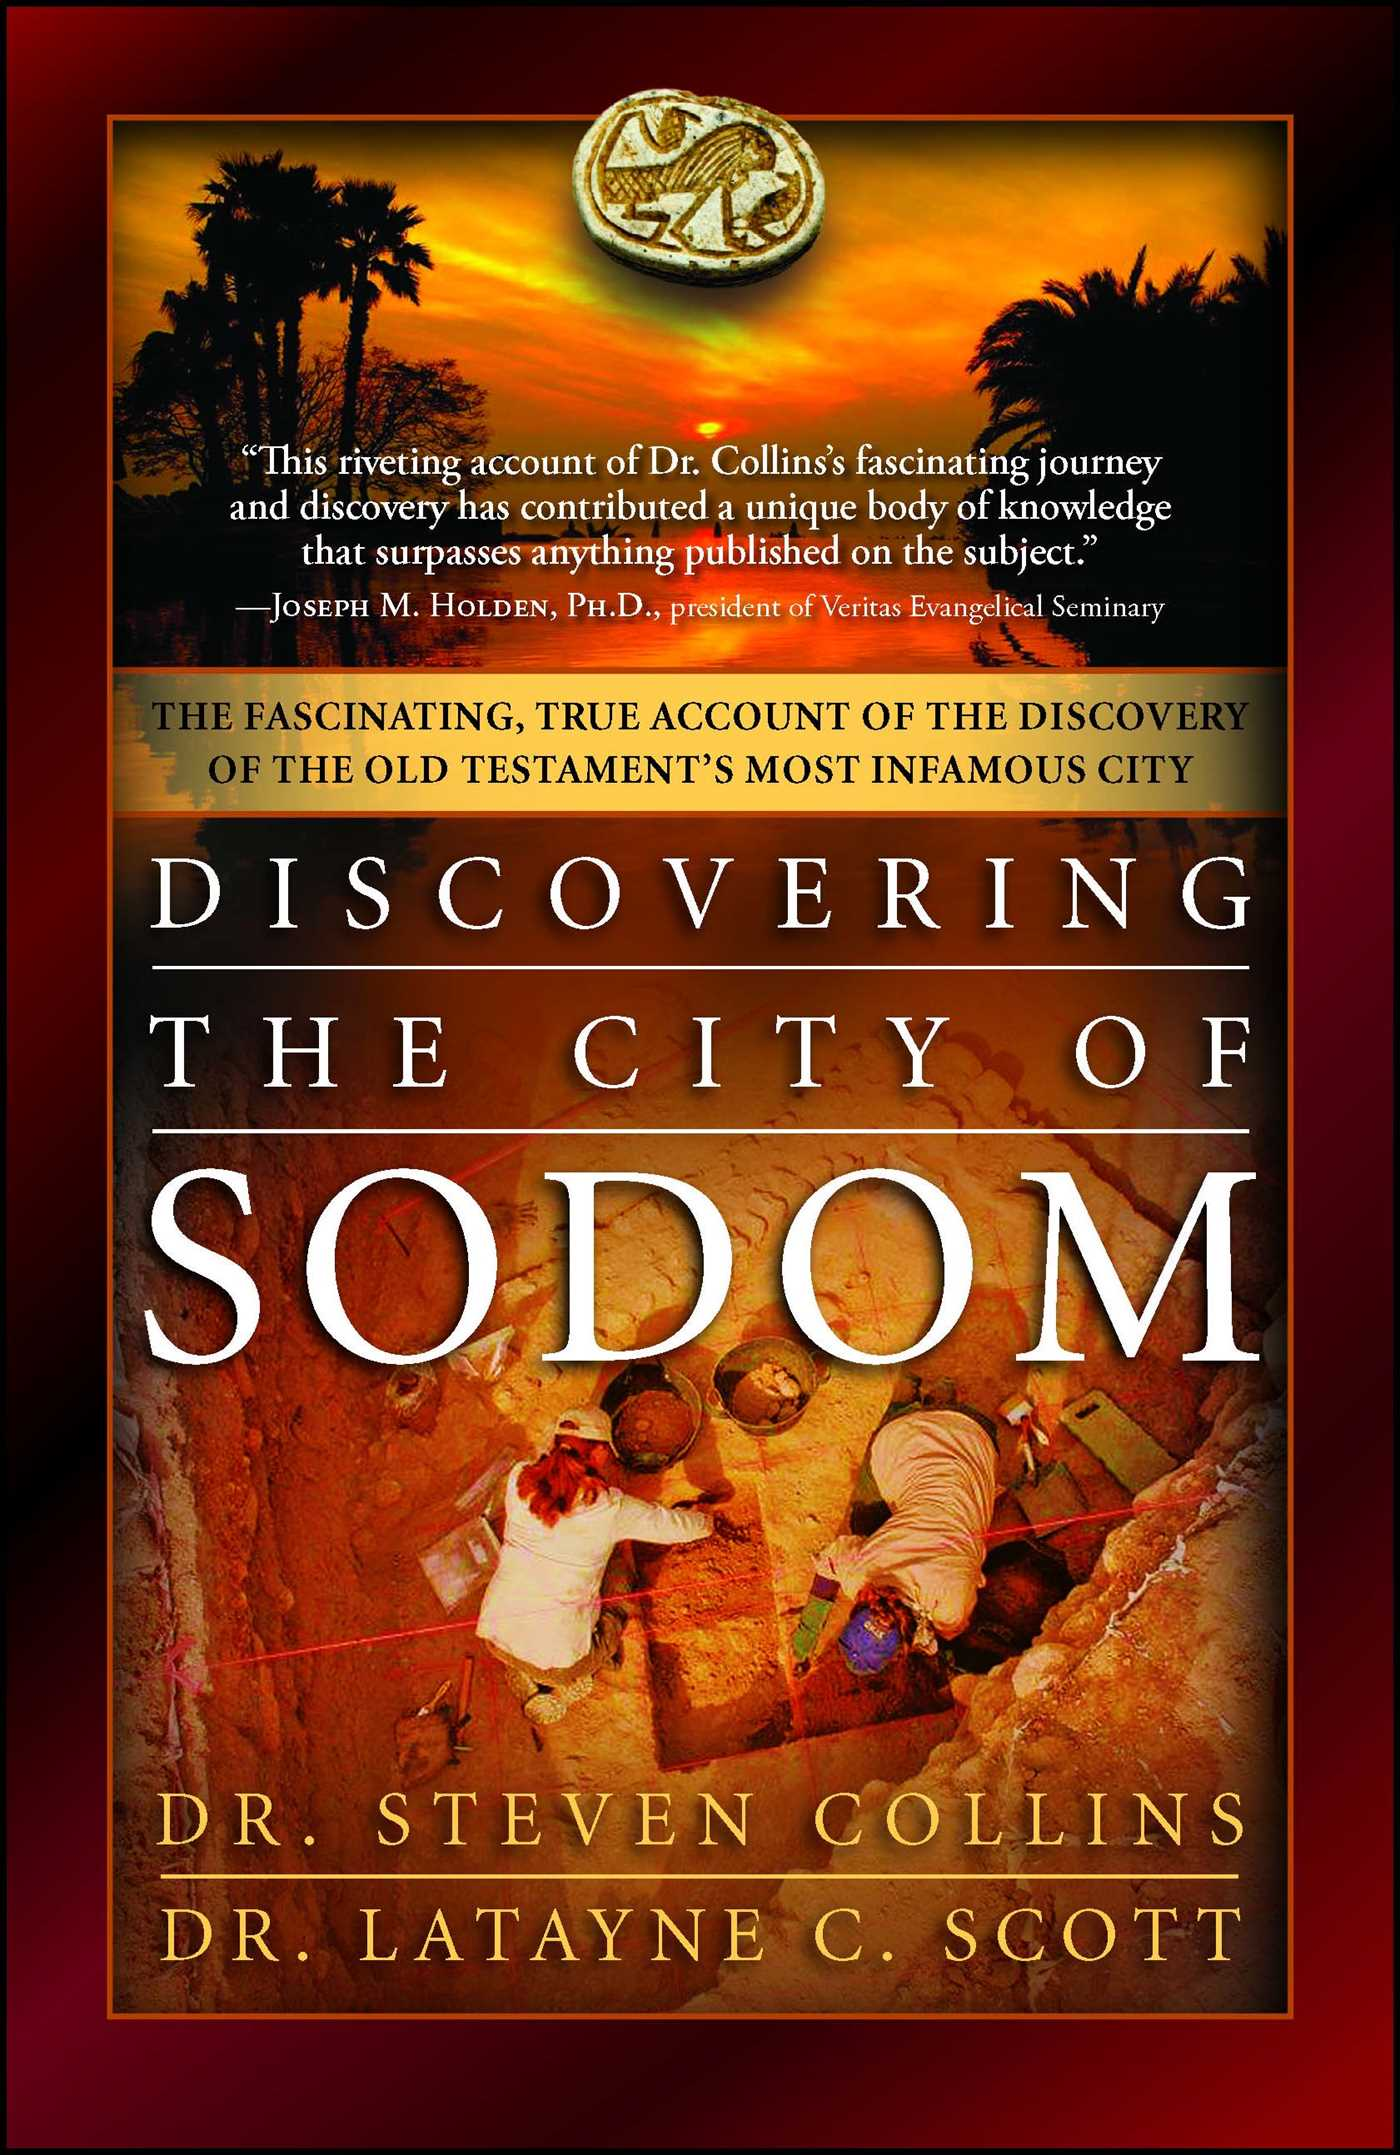 Discovering the city of sodom 9781451684377 hr